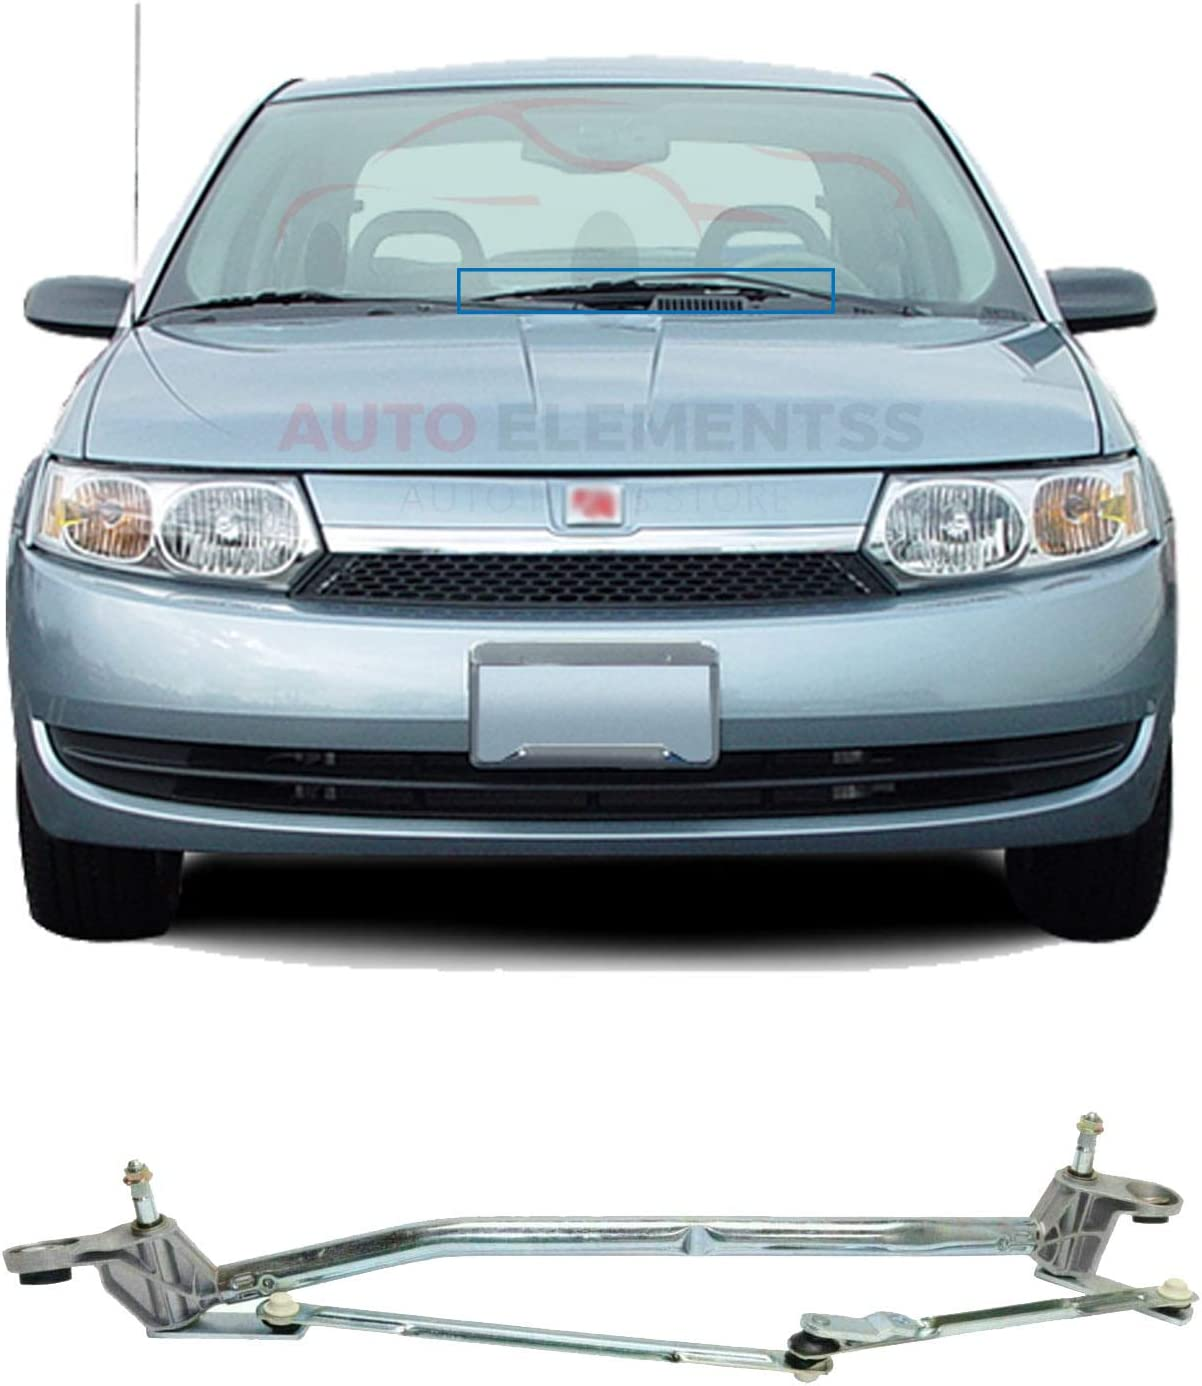 New Windshield Wiper System Transmission Linkage For 2003-2007 Saturn Ion Direct Replacement REPS360903